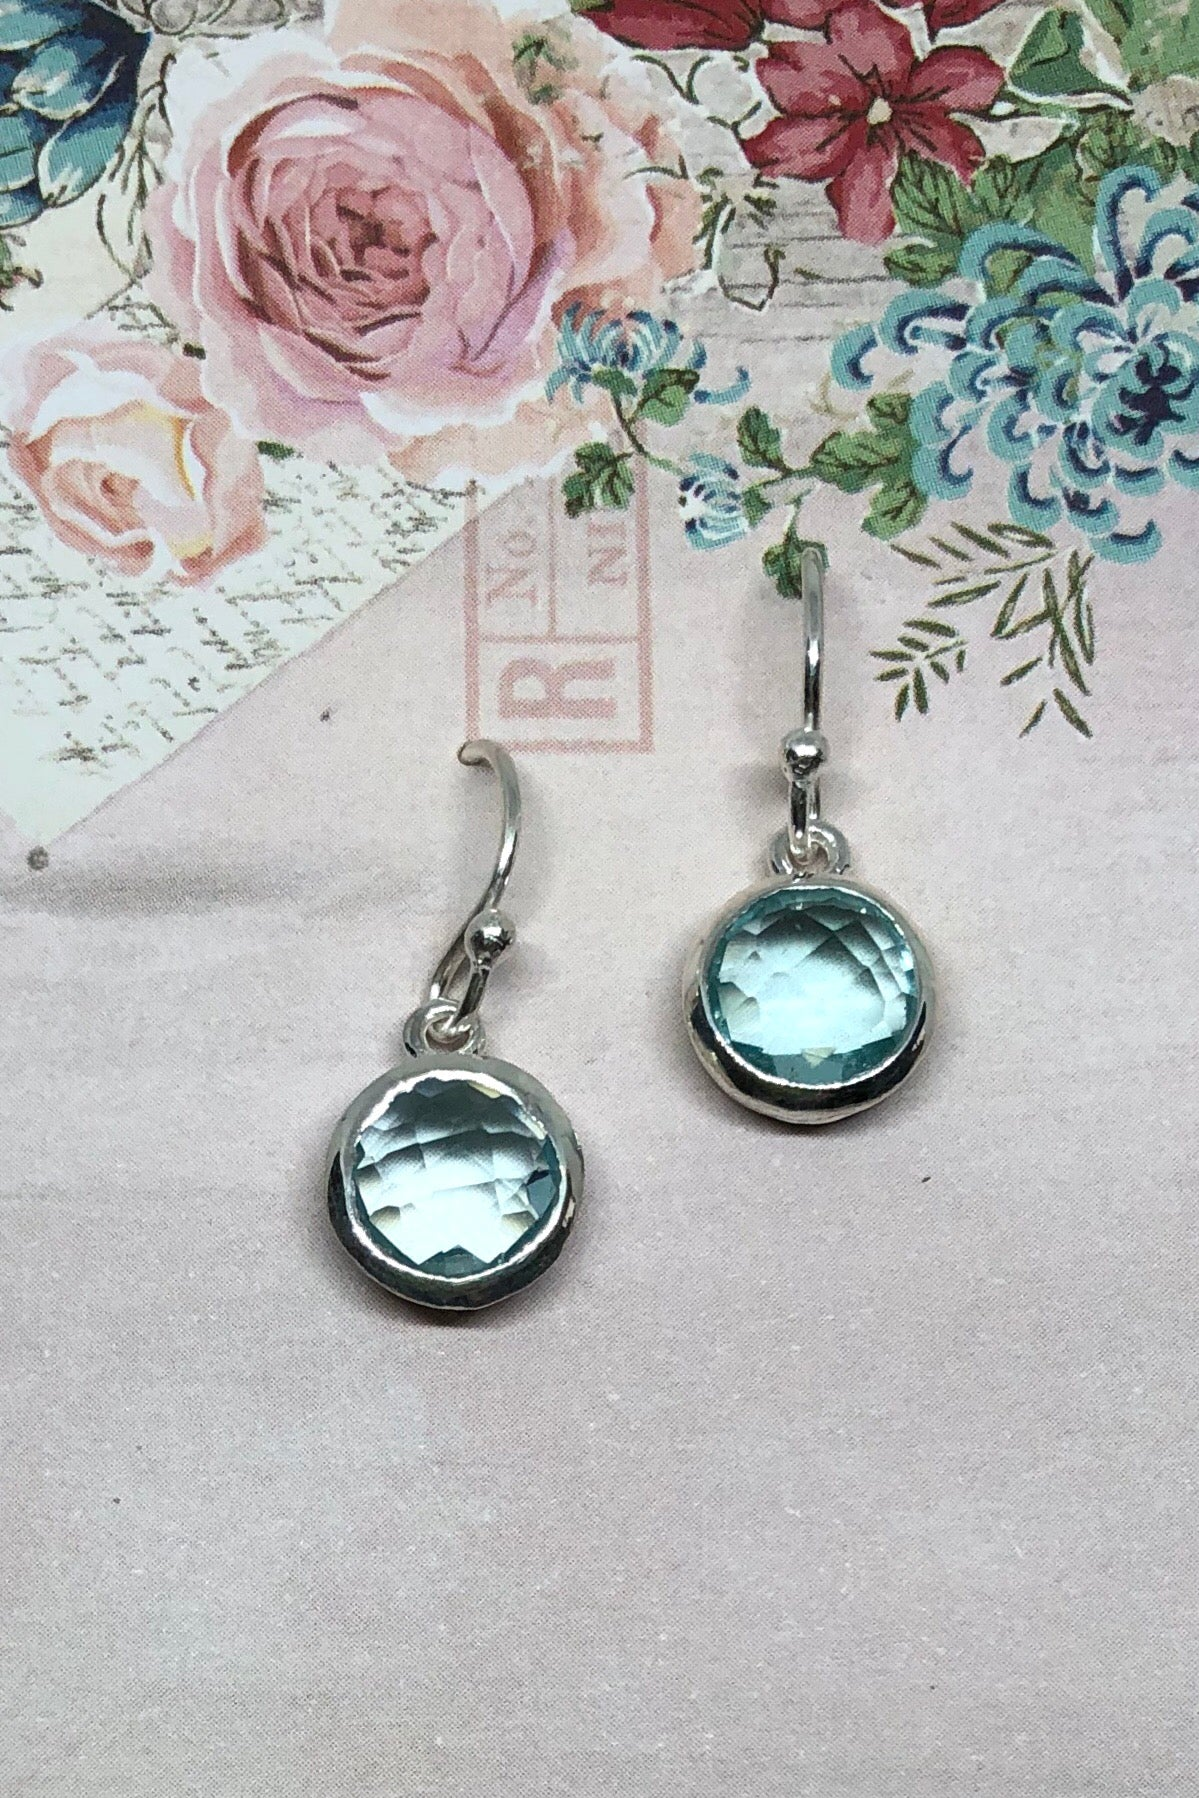 A dainty Blue Topaz sparkles in a silver earring, the Oracle earrings Rondo Blue Topaz features approximate 2cm length including hook, 925 solid silver fish hook and the colour of beautiful sky.